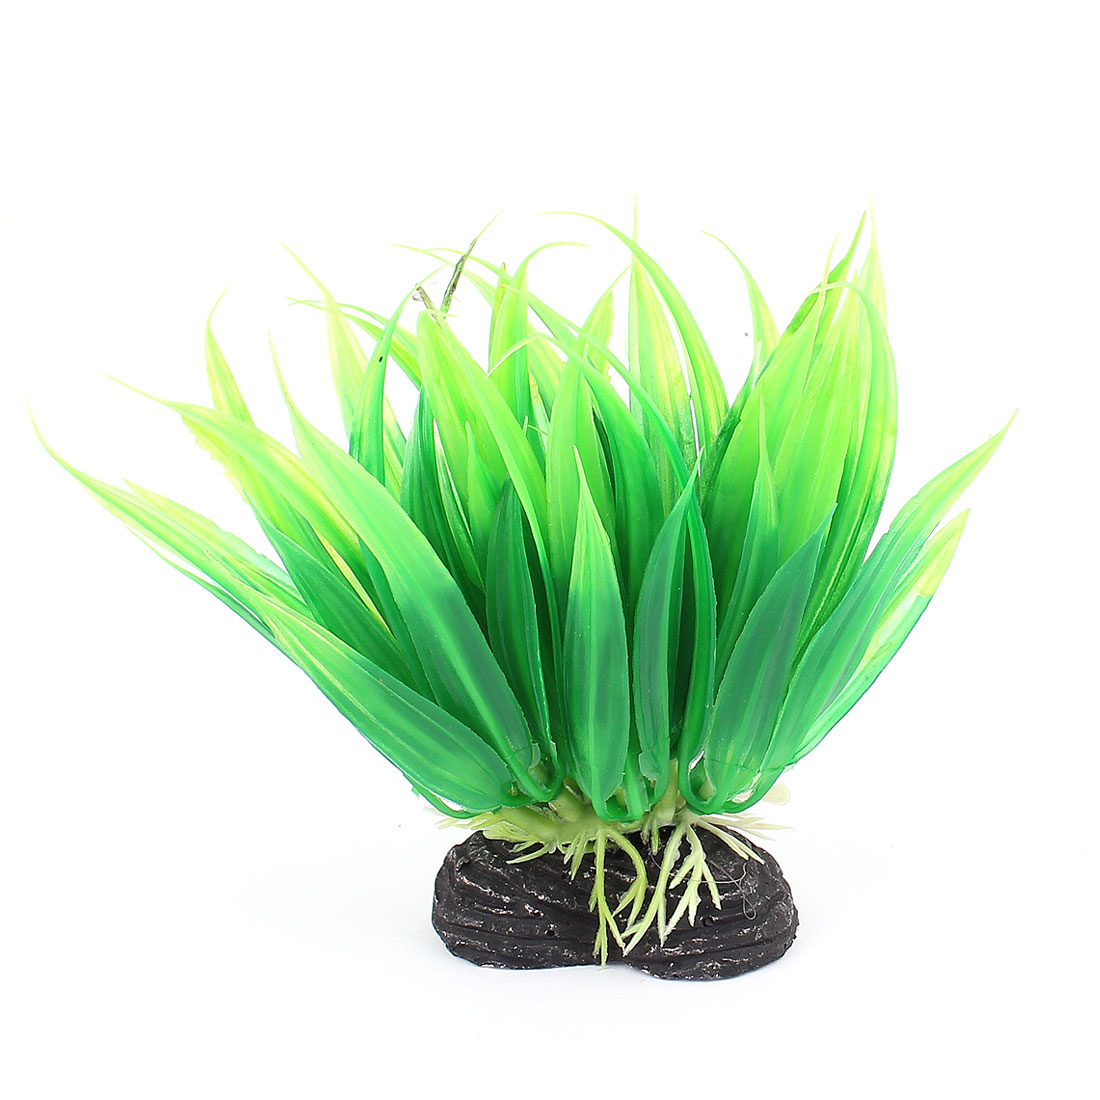 Green Plastic Artifical Aquarium Plant Underwater Grass Decor for Fish Tank Fishbowl